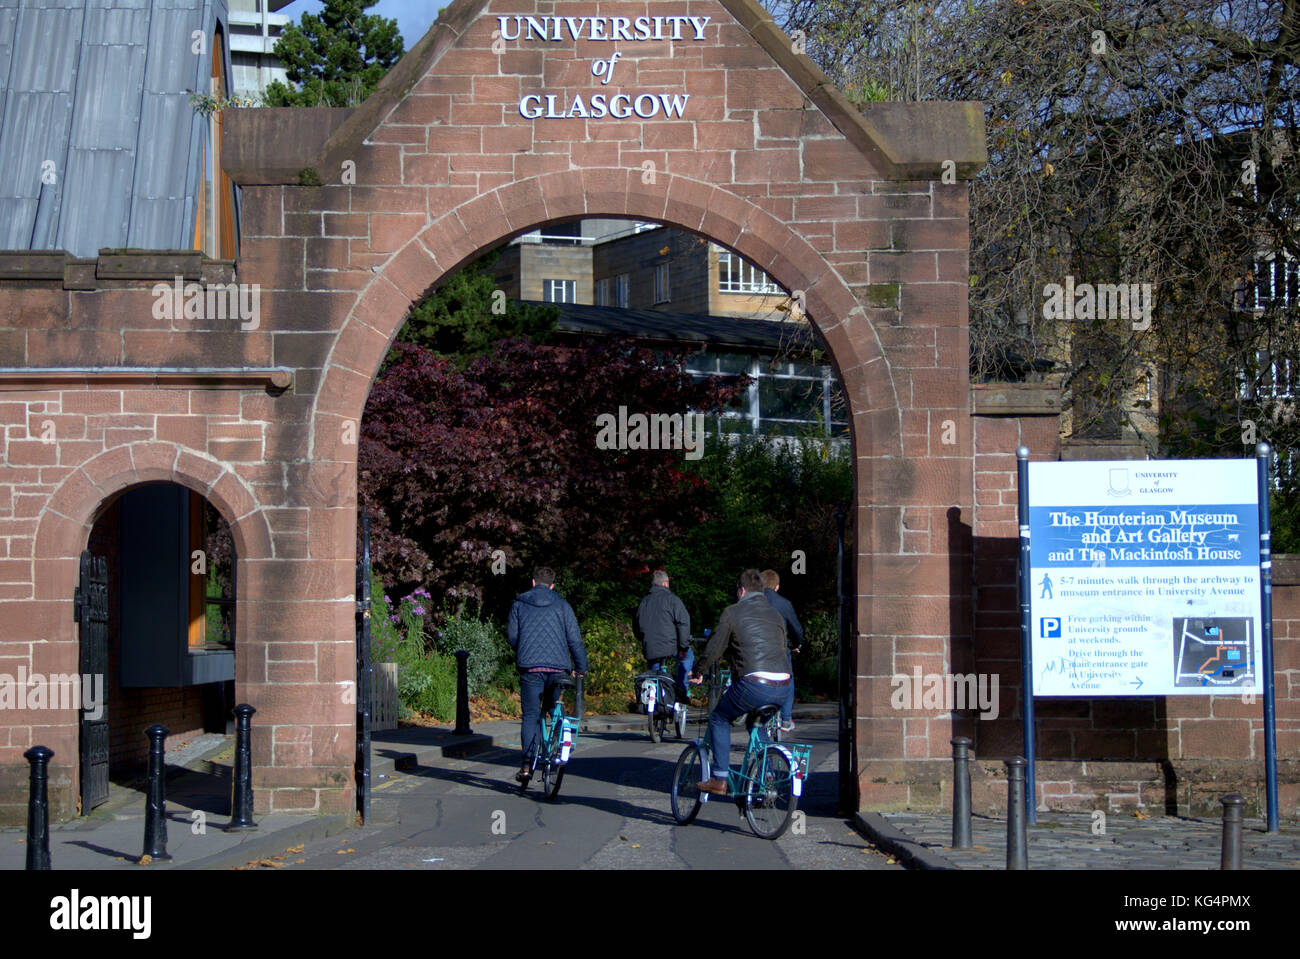 glasgow university  entrance sign kelvingrove park  in the Autumn viewed from partick bridge - Stock Image